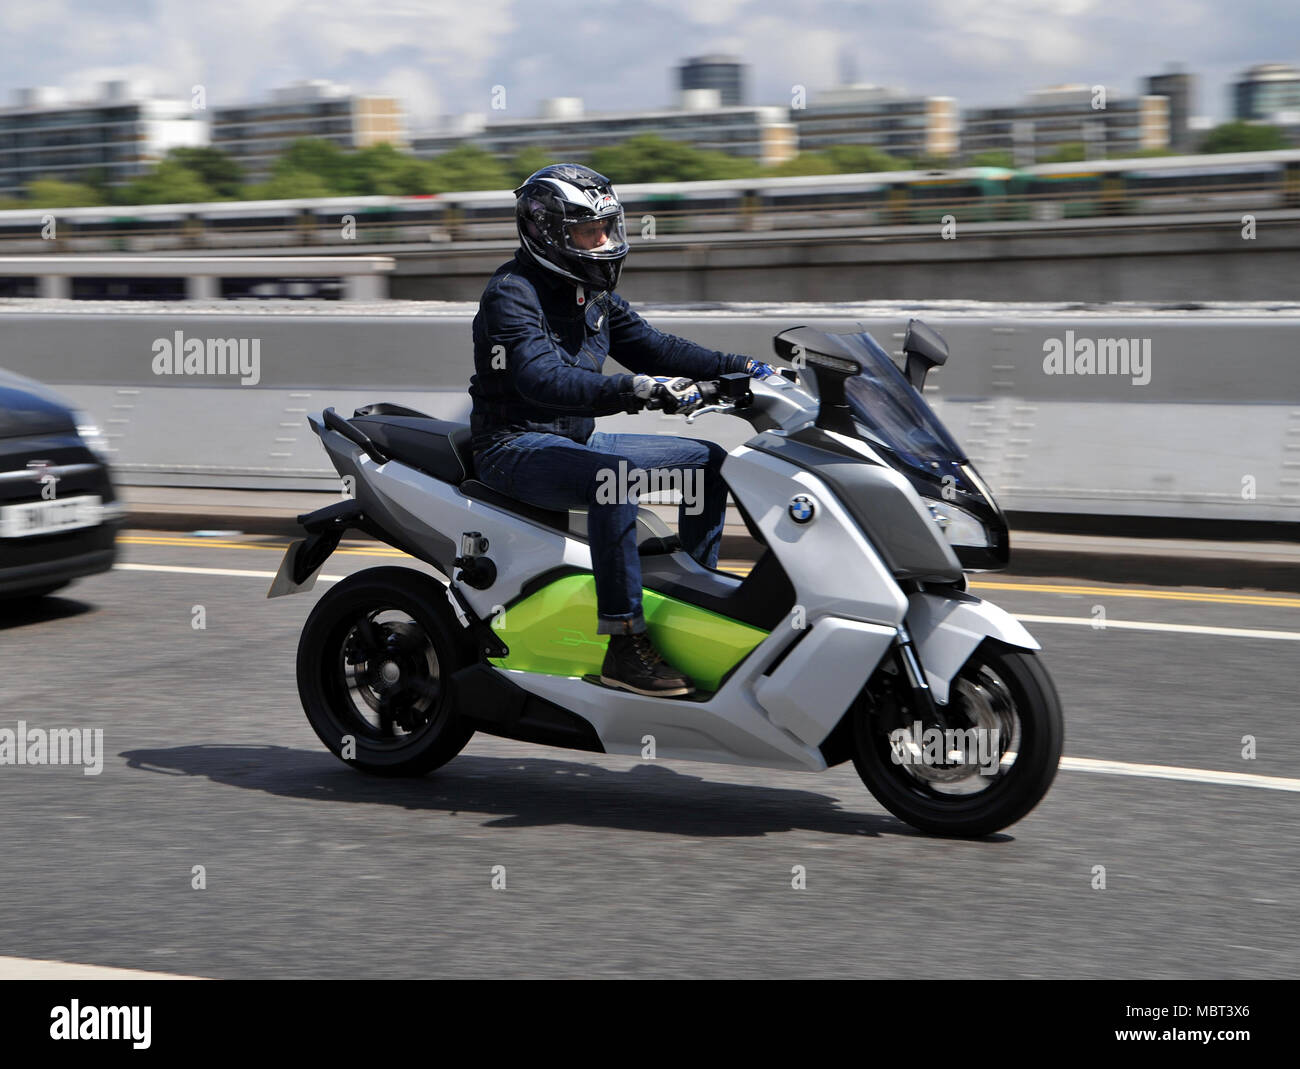 german moped stock photos german moped stock images alamy. Black Bedroom Furniture Sets. Home Design Ideas